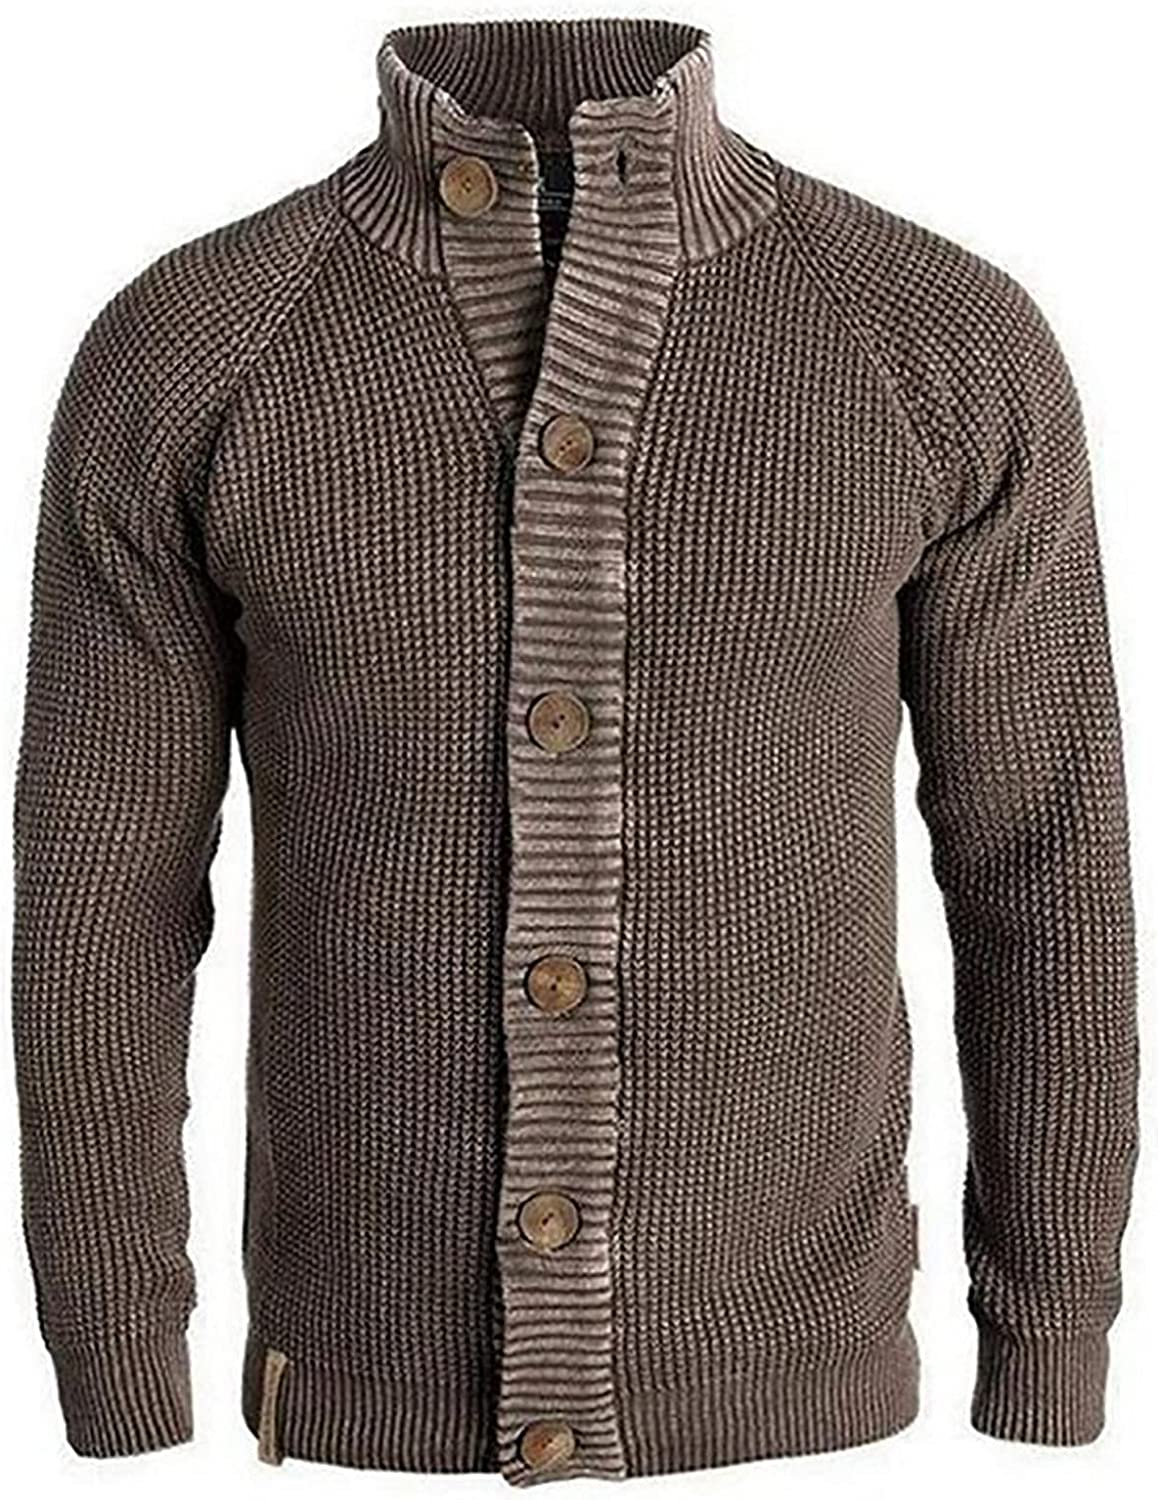 Men's Turtleneck Sweater Retro Long Sleeve Cable Knited Thermal Cardigan Coat Jacket, Must-Have for Mature Men